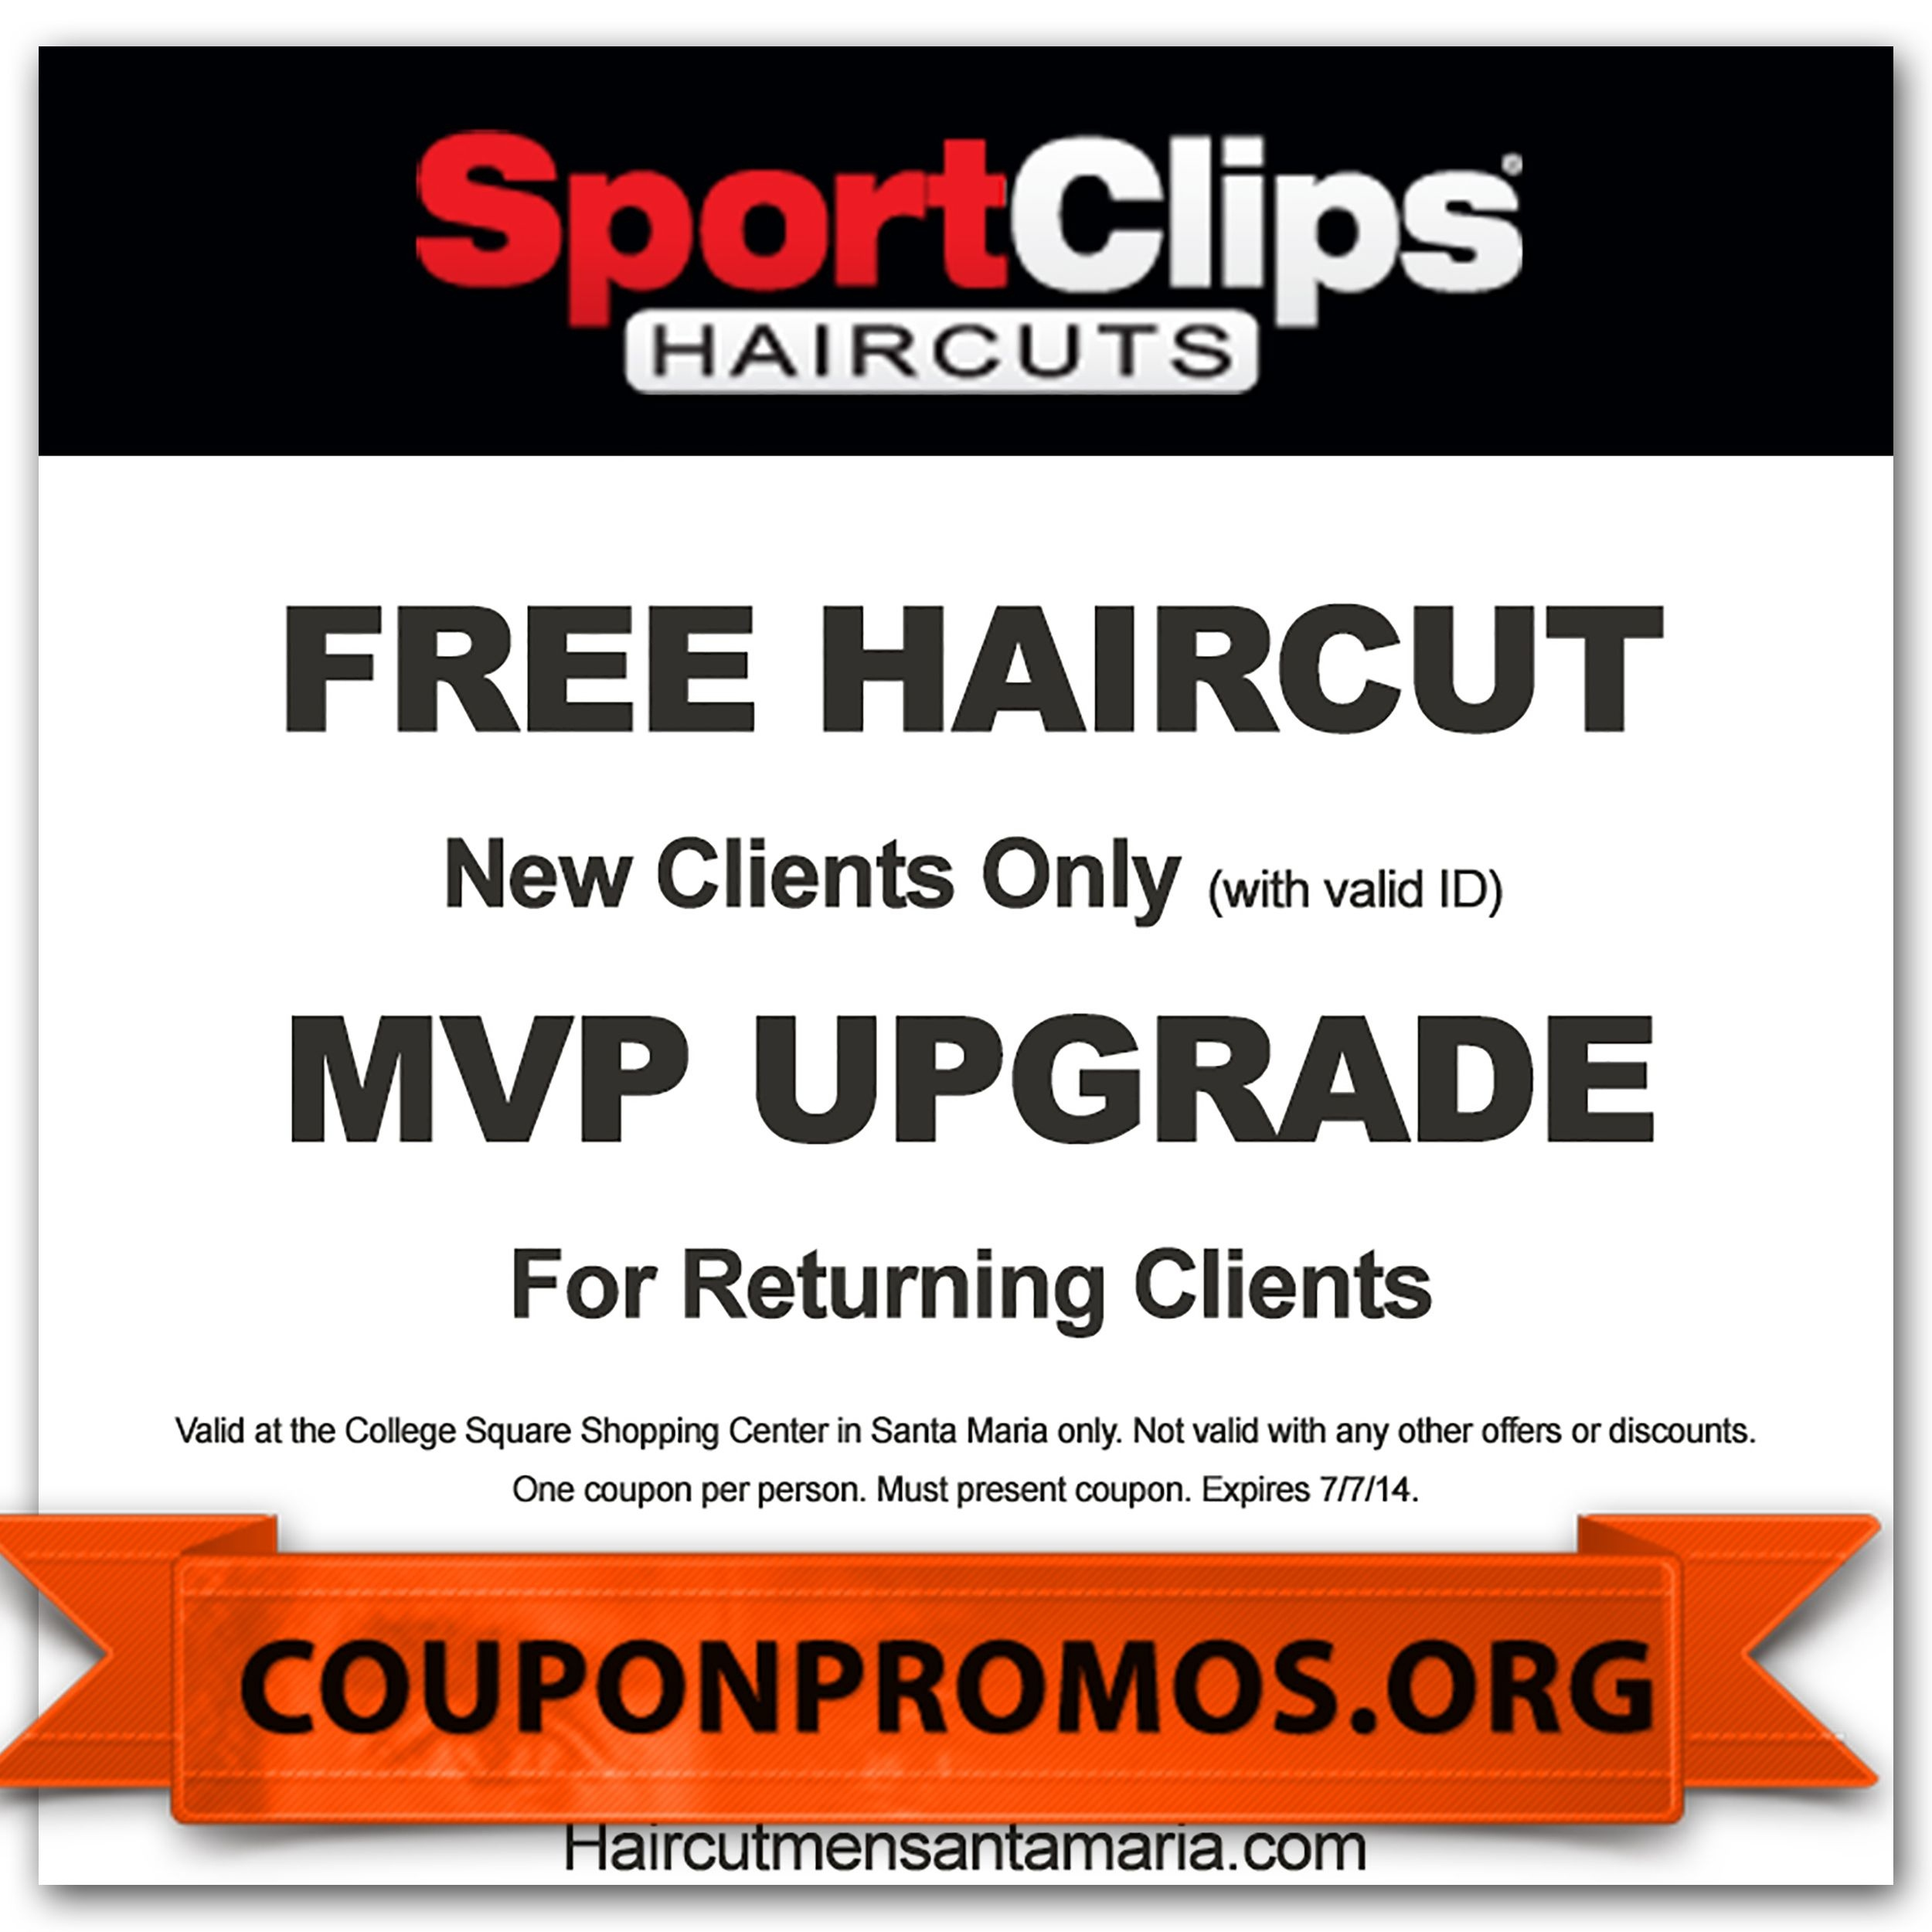 Sports Clips Coupons For November December   Coupons For Free - Sports Clips Free Haircut Printable Coupon